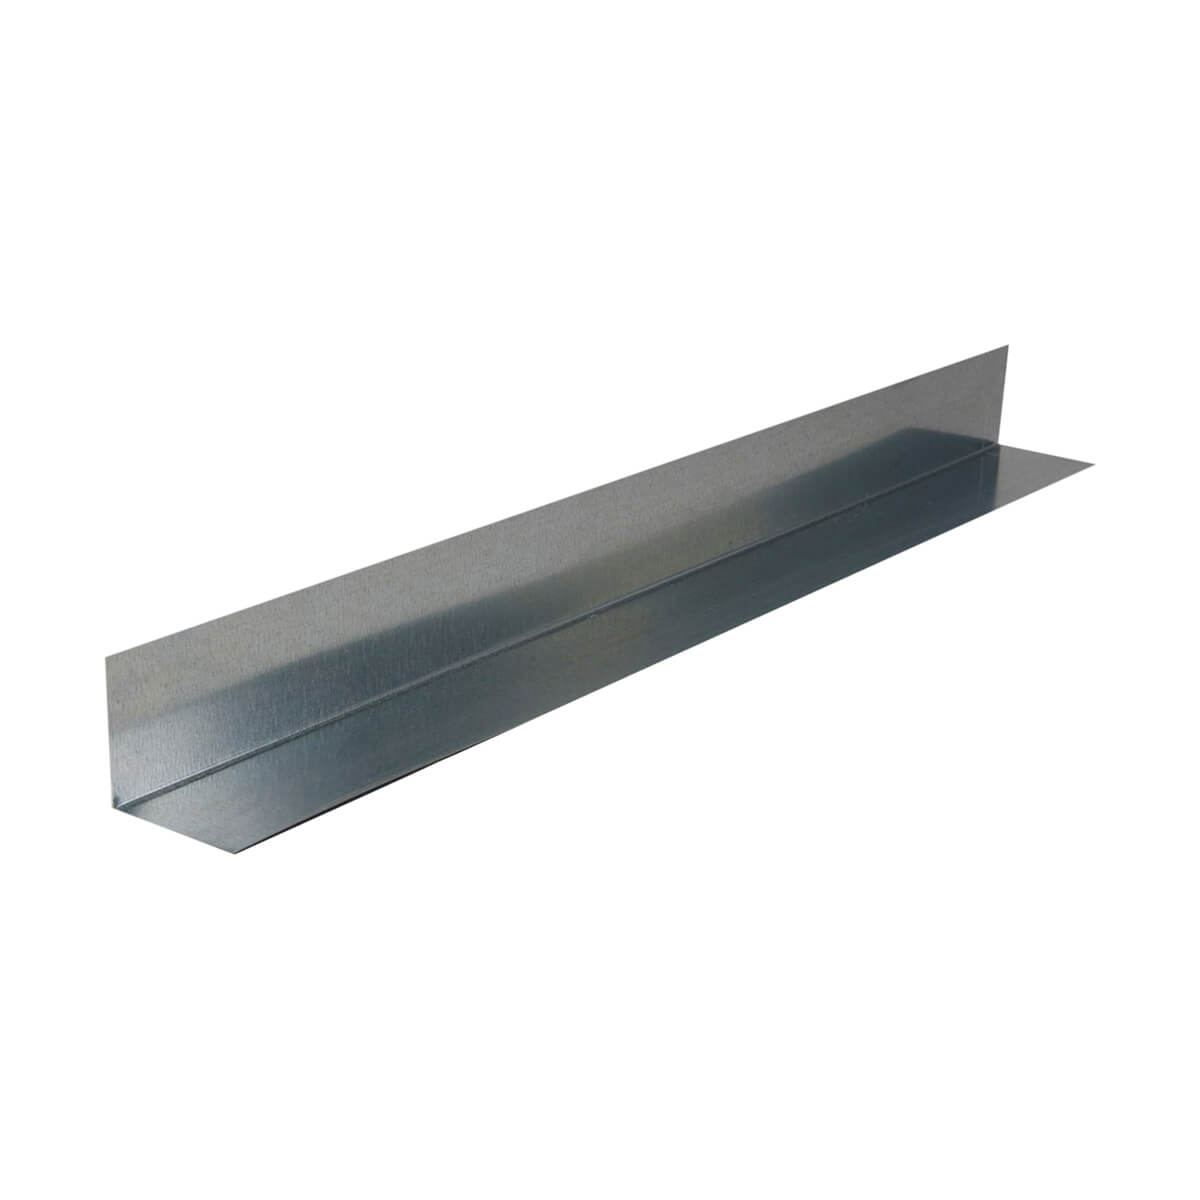 Kaycan Angle Flashing - 3-in x 3-inx 10-ft - Natural Finish